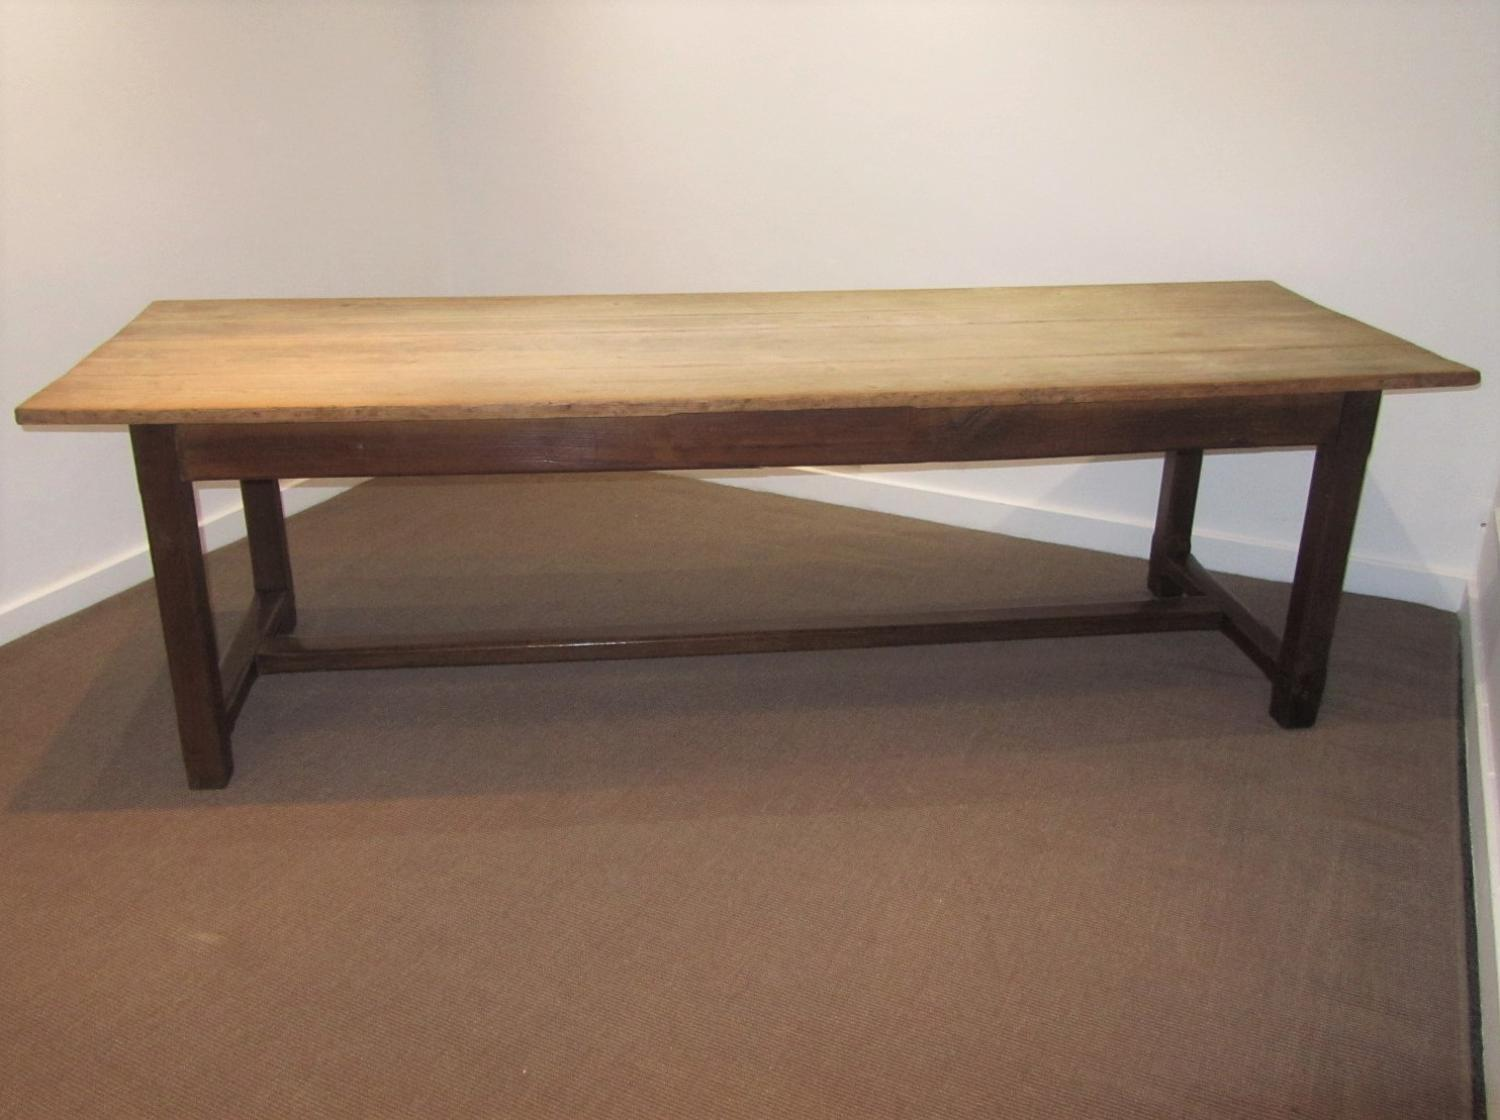 A large farmhouse table